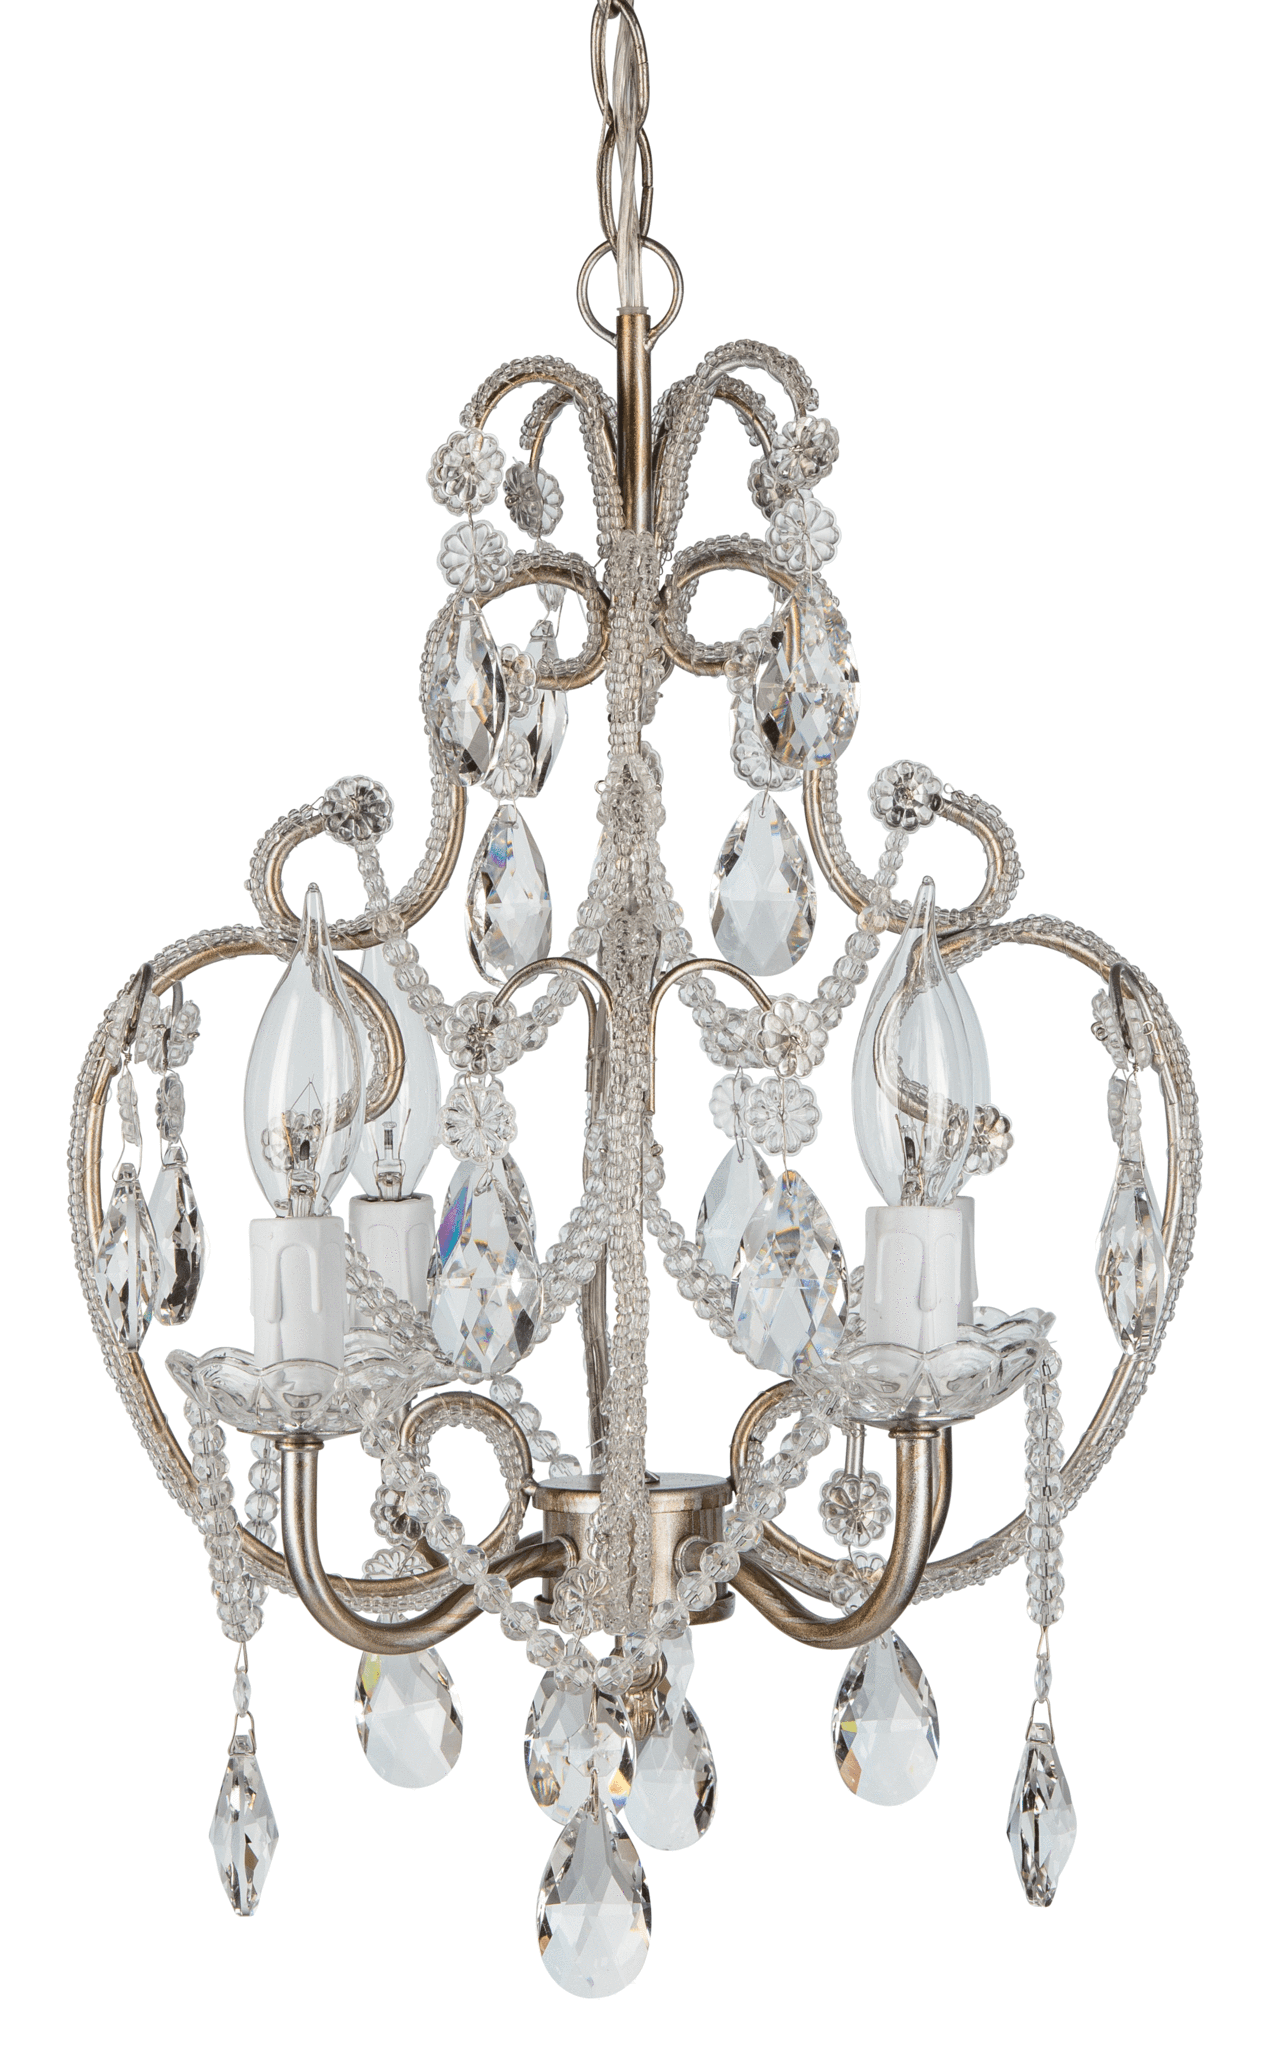 4 light beaded crystal plug in chandelier silver tiffany swag 4 light beaded crystal plug in chandelier silver arubaitofo Image collections